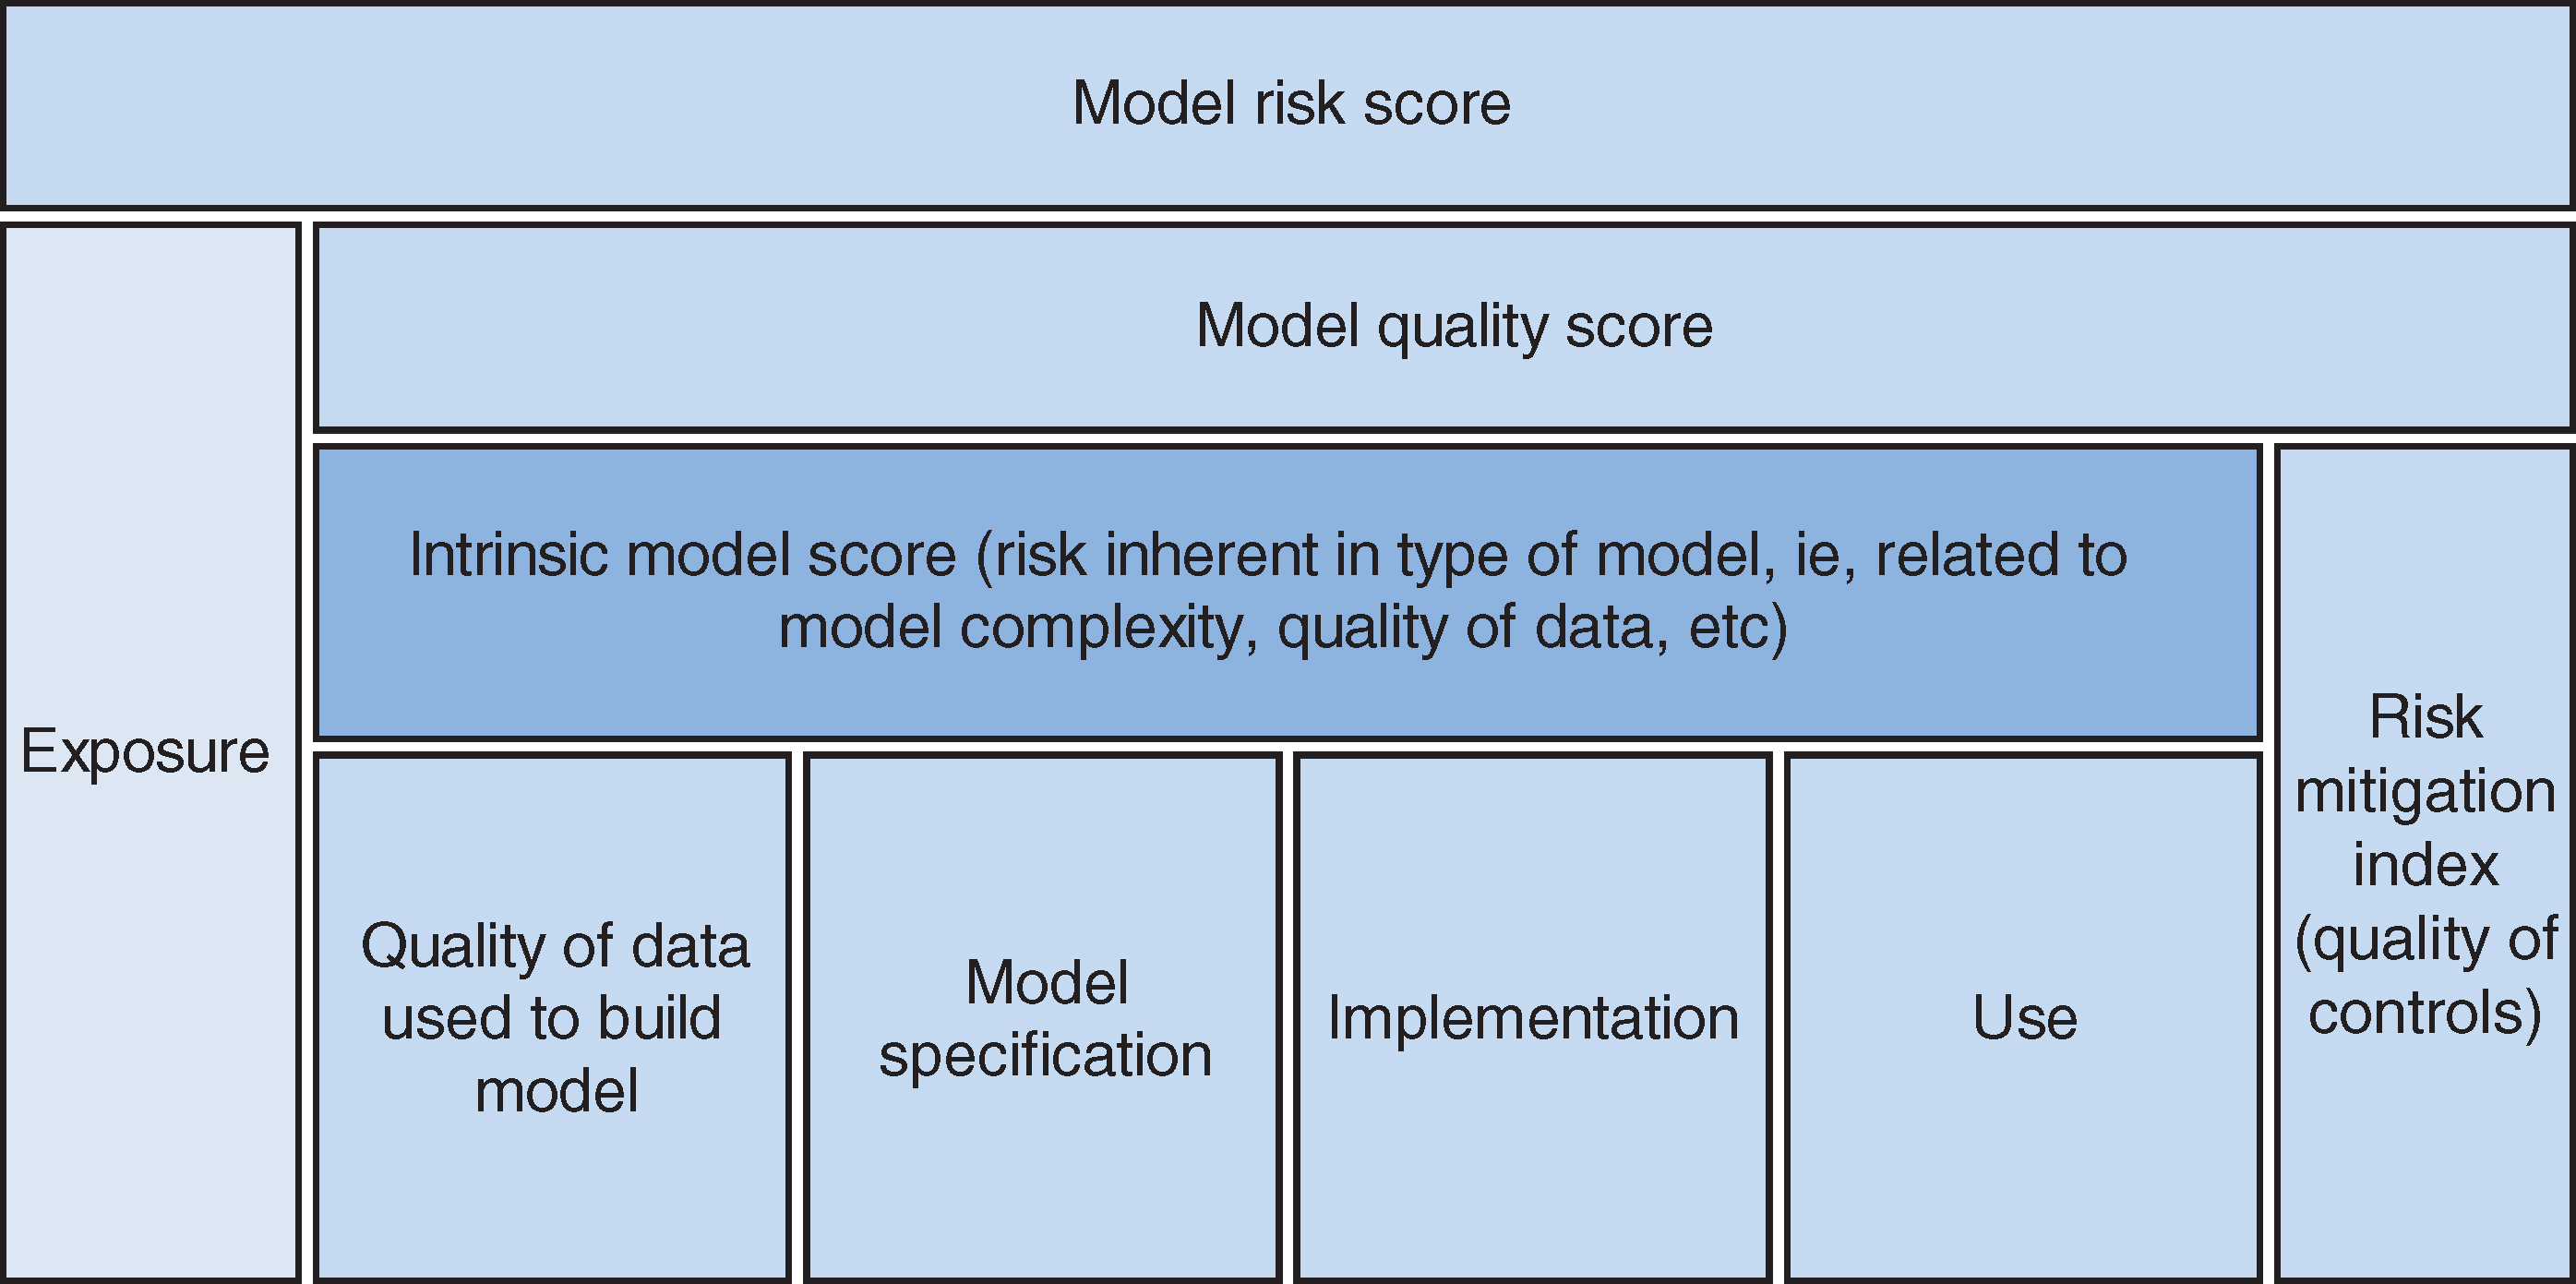 Components of Keenan's model risk measure. Source: Keenan (2015).